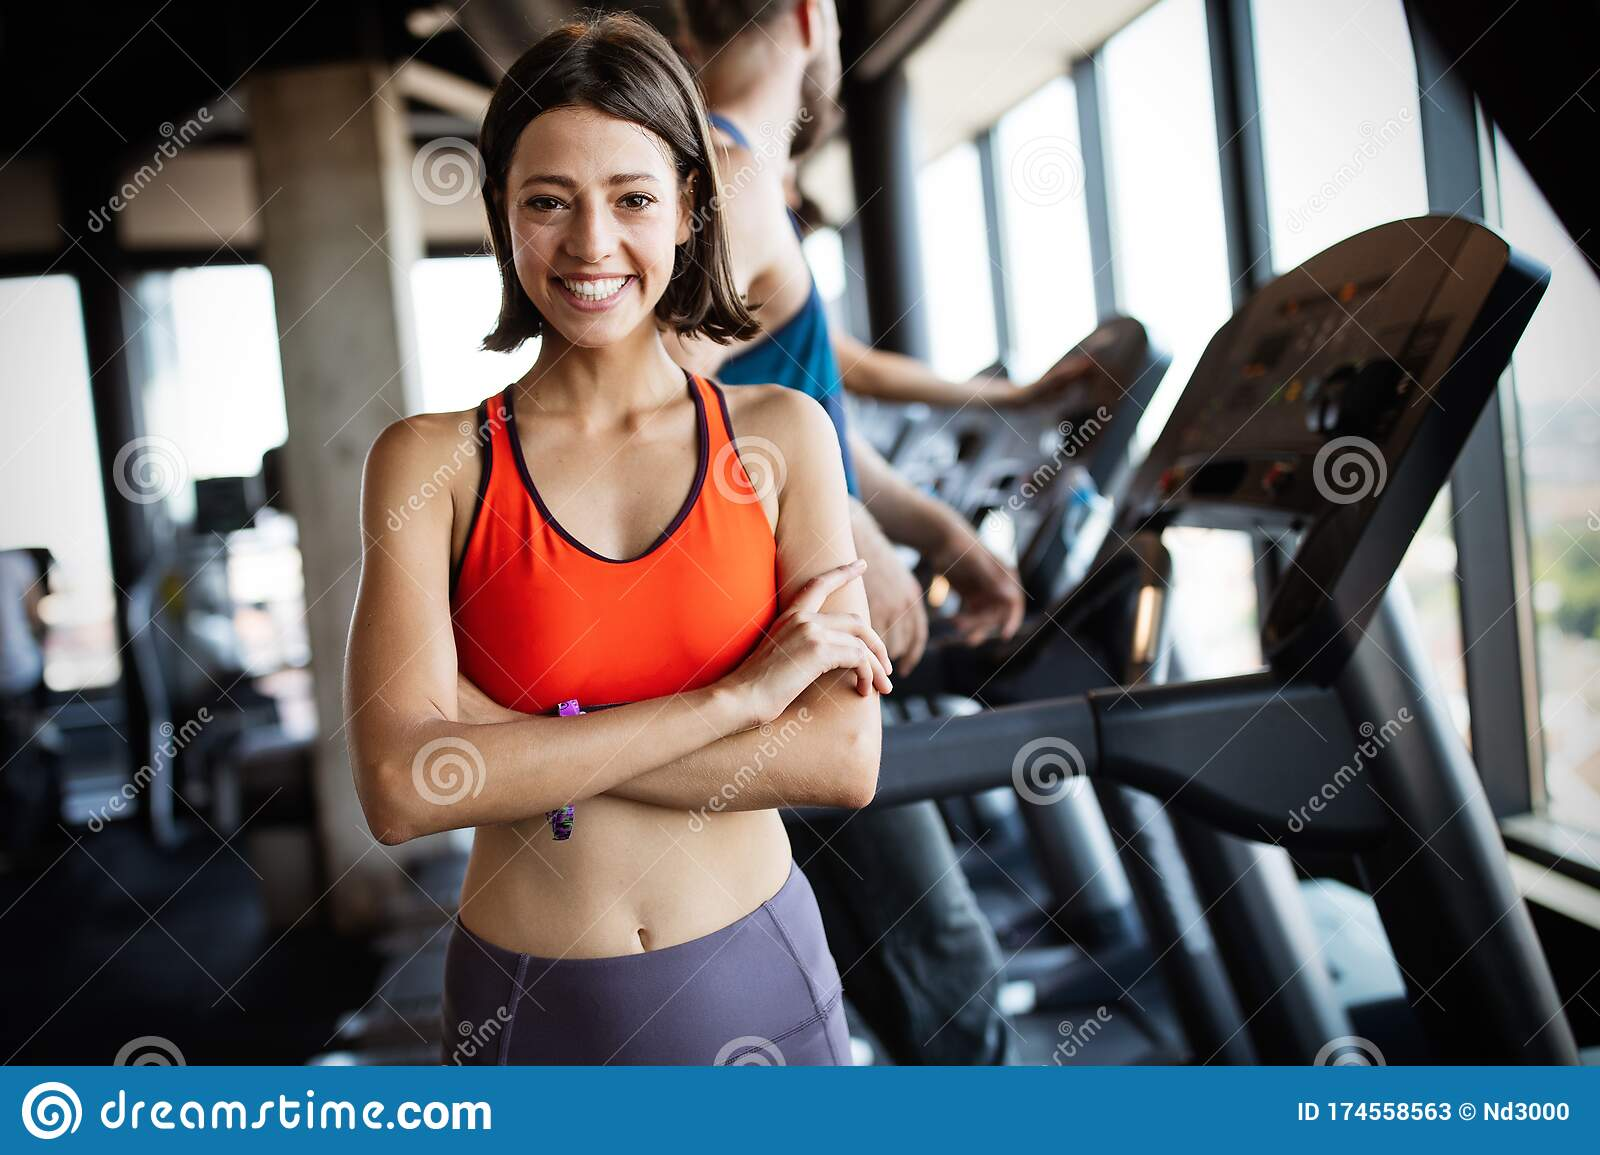 Beautiful Fit Women Working Out In Gym Stock Image Image Of Active People 174558563 Women's fleece sparkle training top. dreamstime com